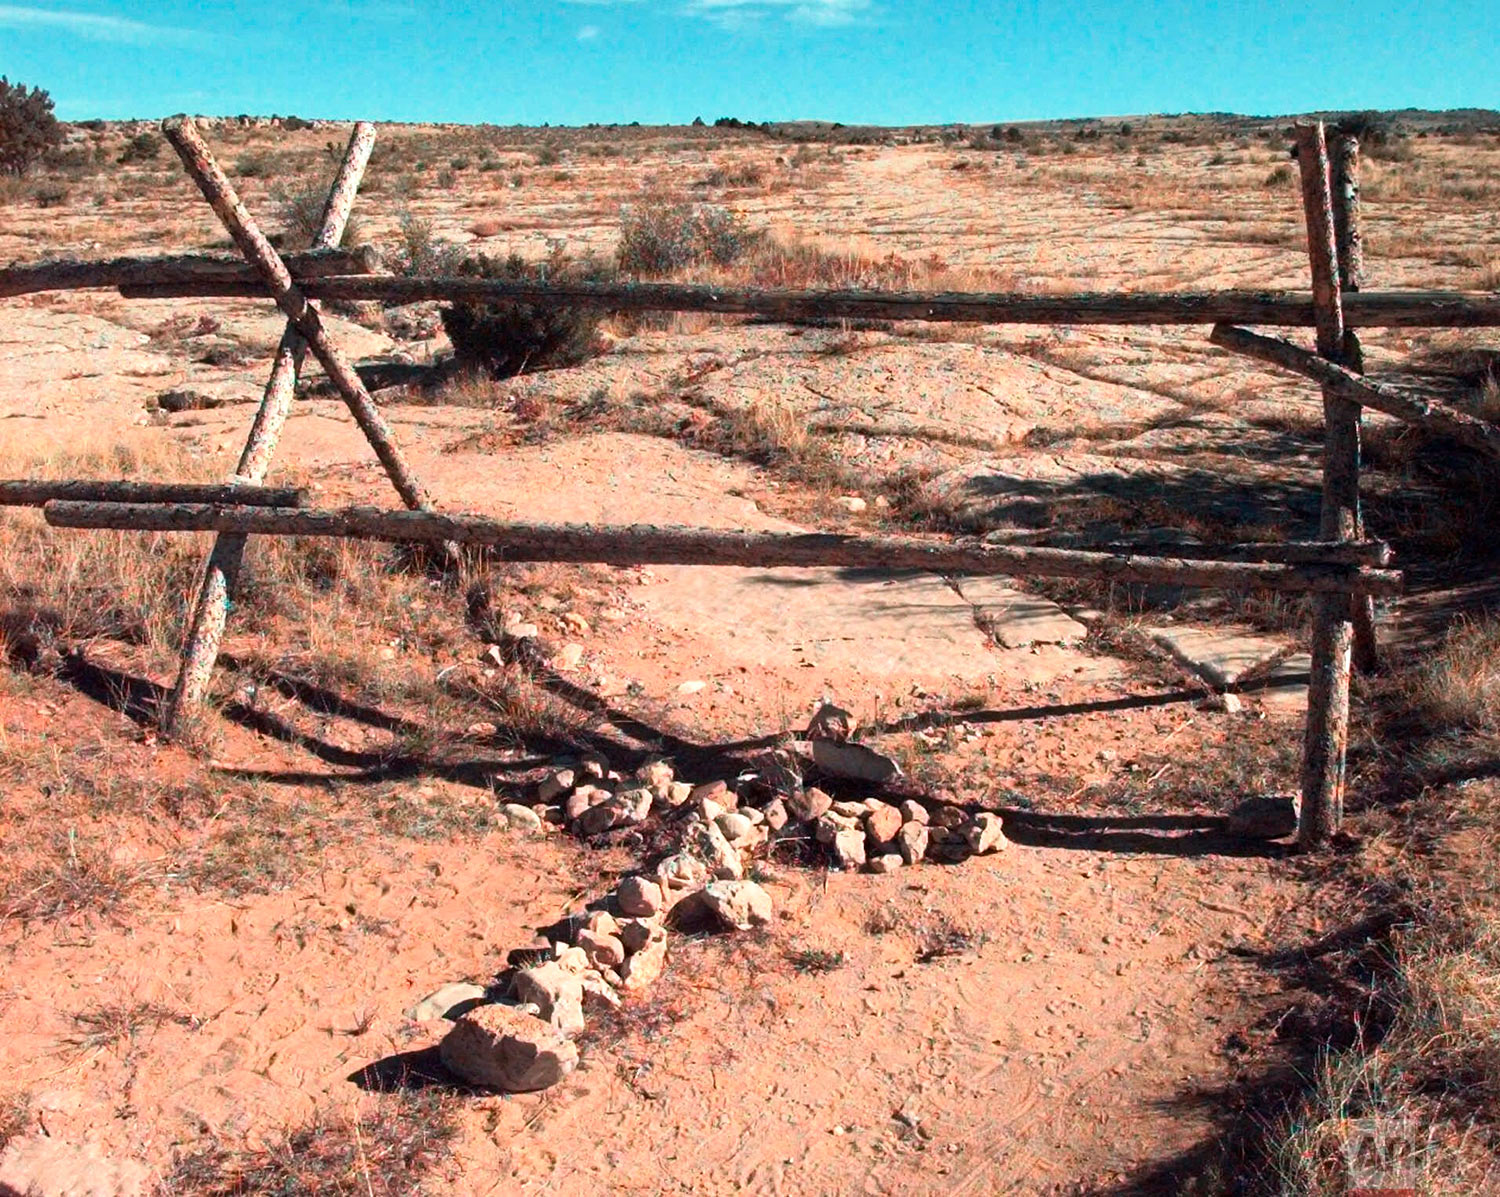 In this Oct. 9, 1999 file photo, a cross made of stones rests below the fence in Laramie, Wyo., where a year earlier, University of Wyoming student Matthew Shepard was tied and pistol whipped into a coma. He later died. The murder of Shepard was a watershed moment for gay rights and LGBTQ acceptance in the U.S. (AP Photo/Ed Andrieski)